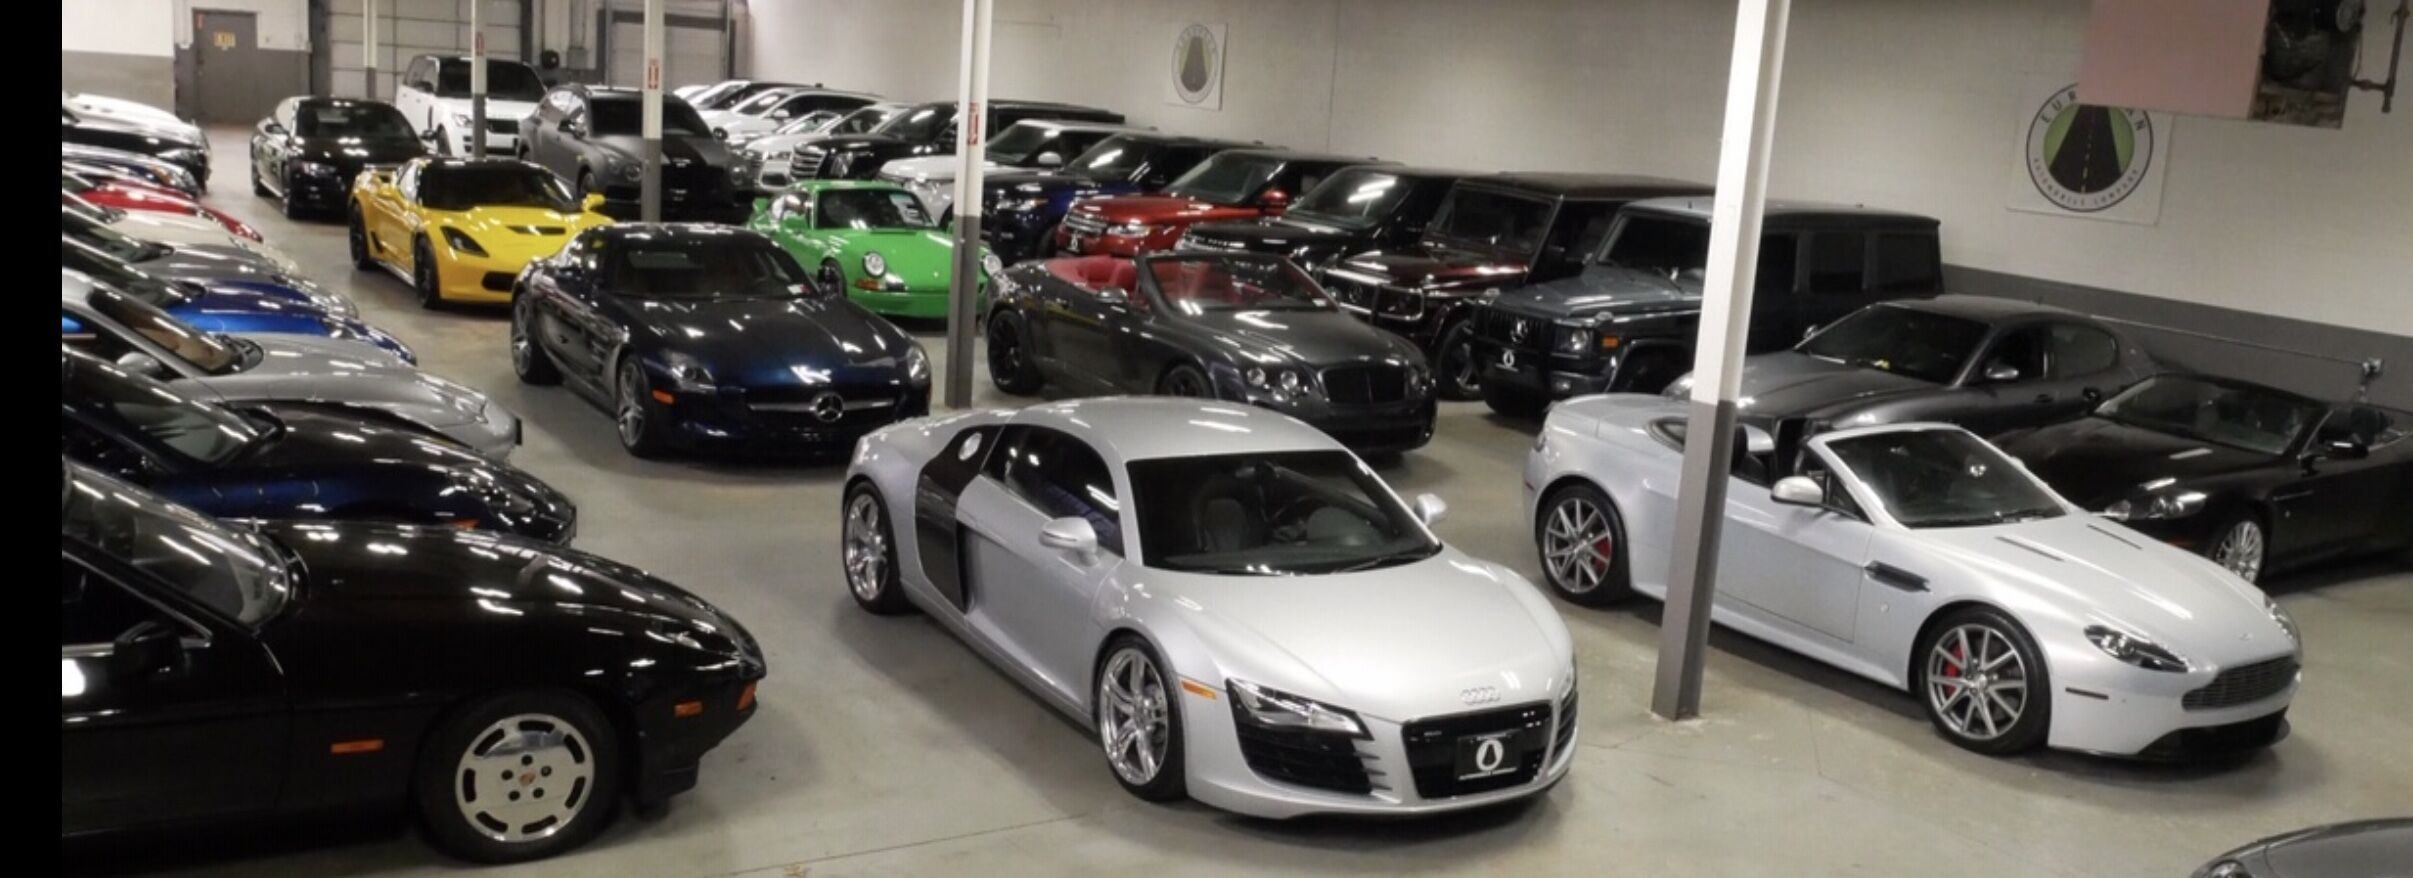 VISIT OUR 75 CAR INDOOR SHOWROOM